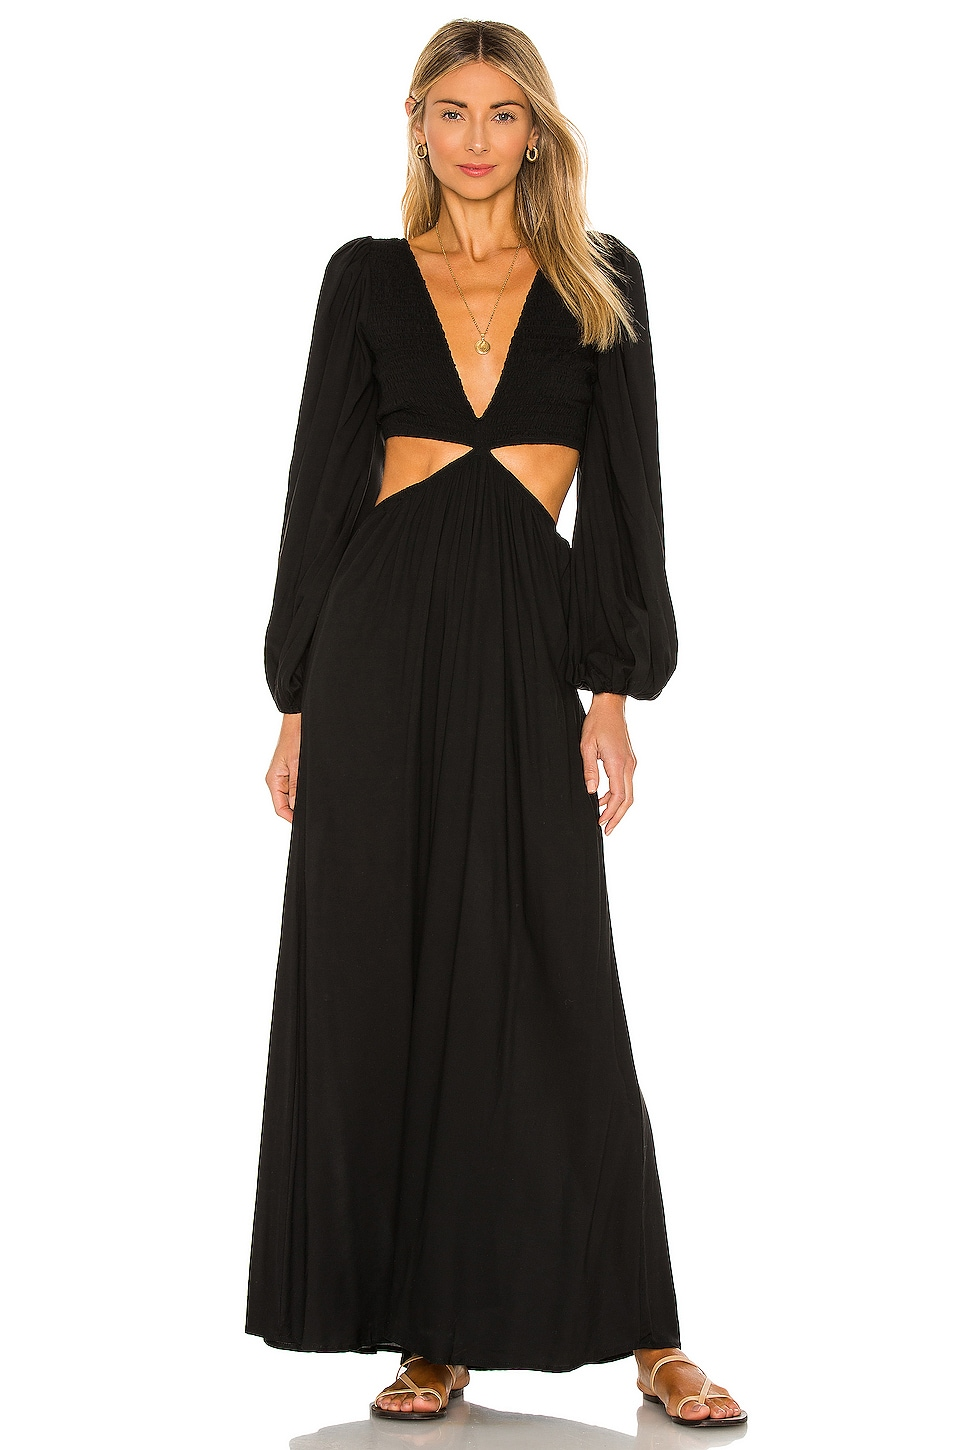 Indah Julie Solid Ruched Bodice Cutaway Maxi Dress in Black